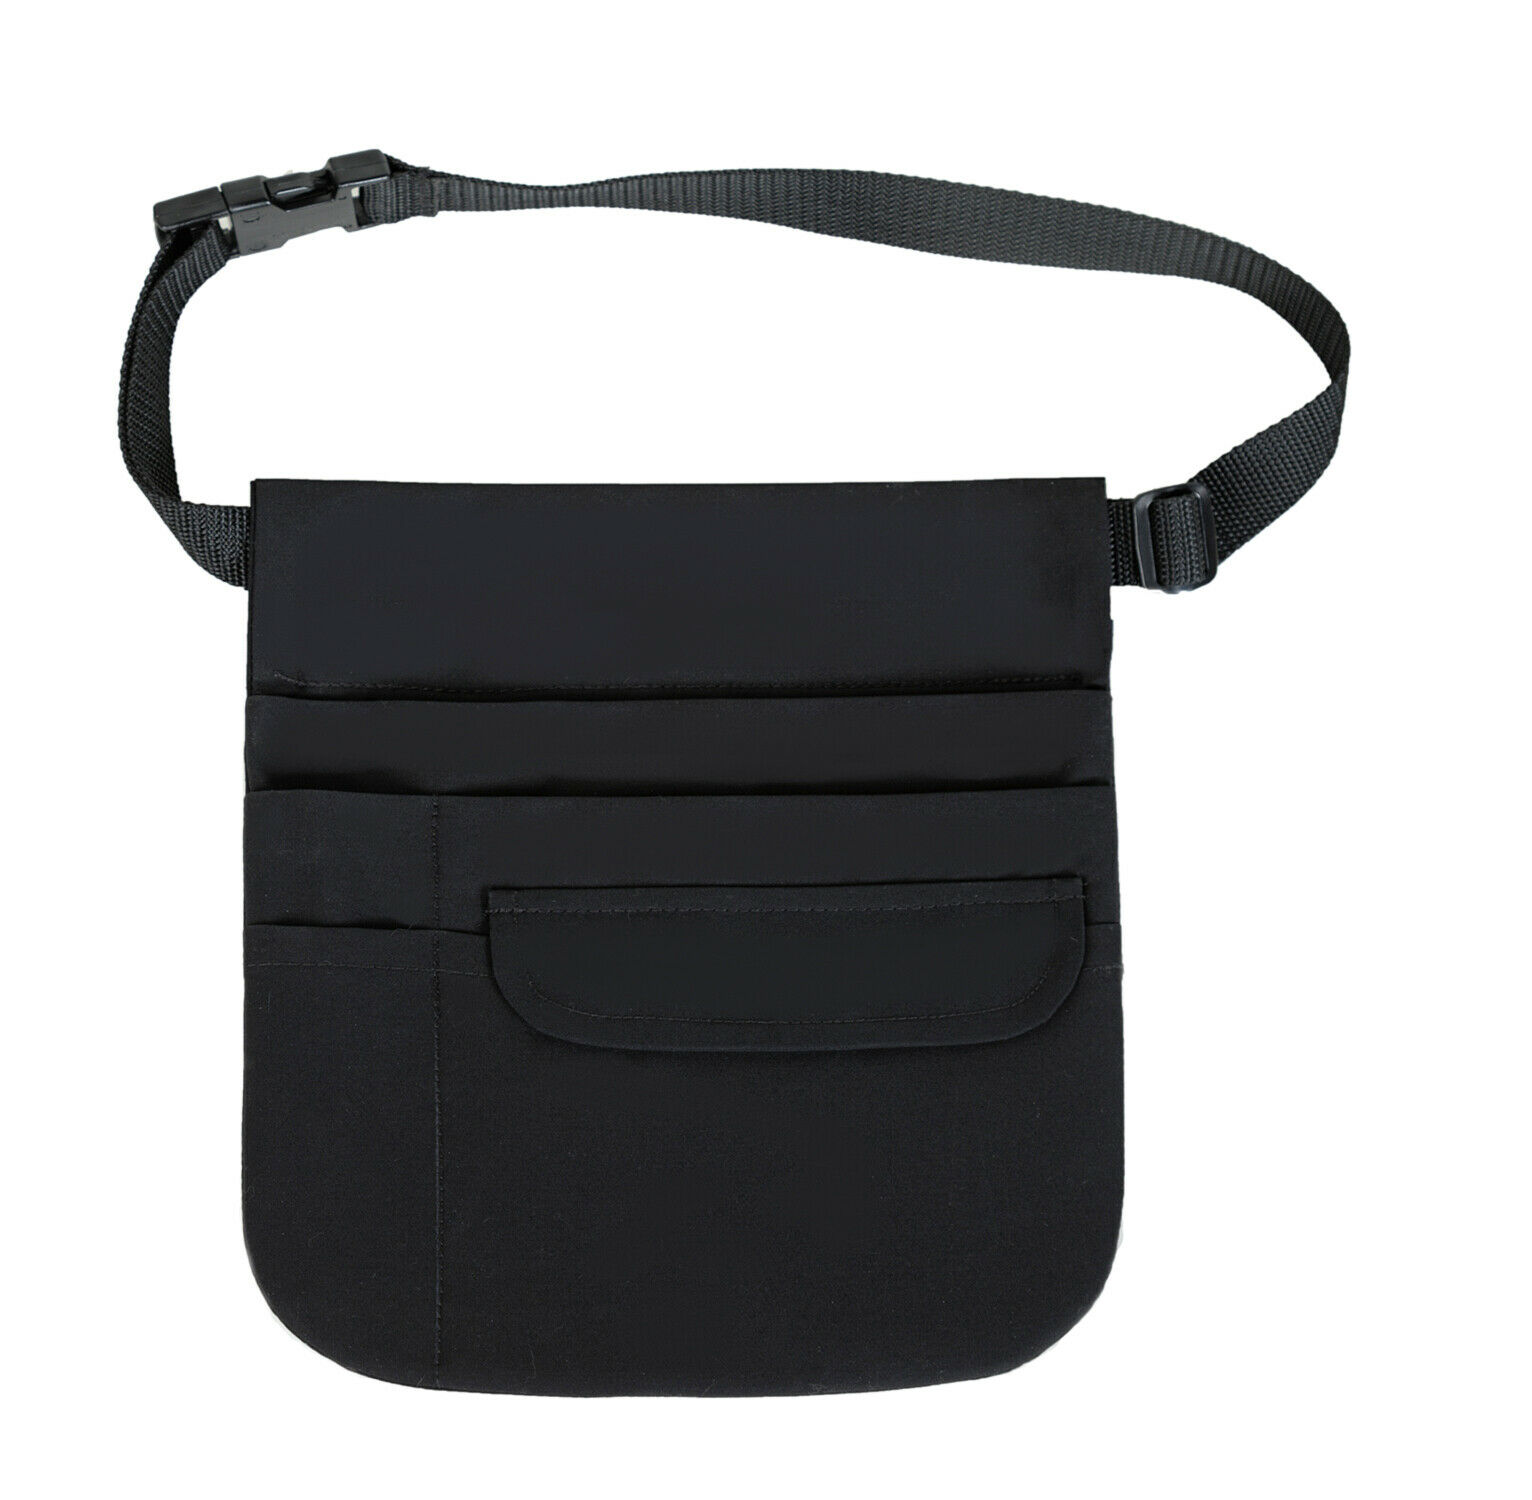 Waitress Pouch Apron with Organizing Pockets  w// Belt Deluxe 5 Pocket Tablet